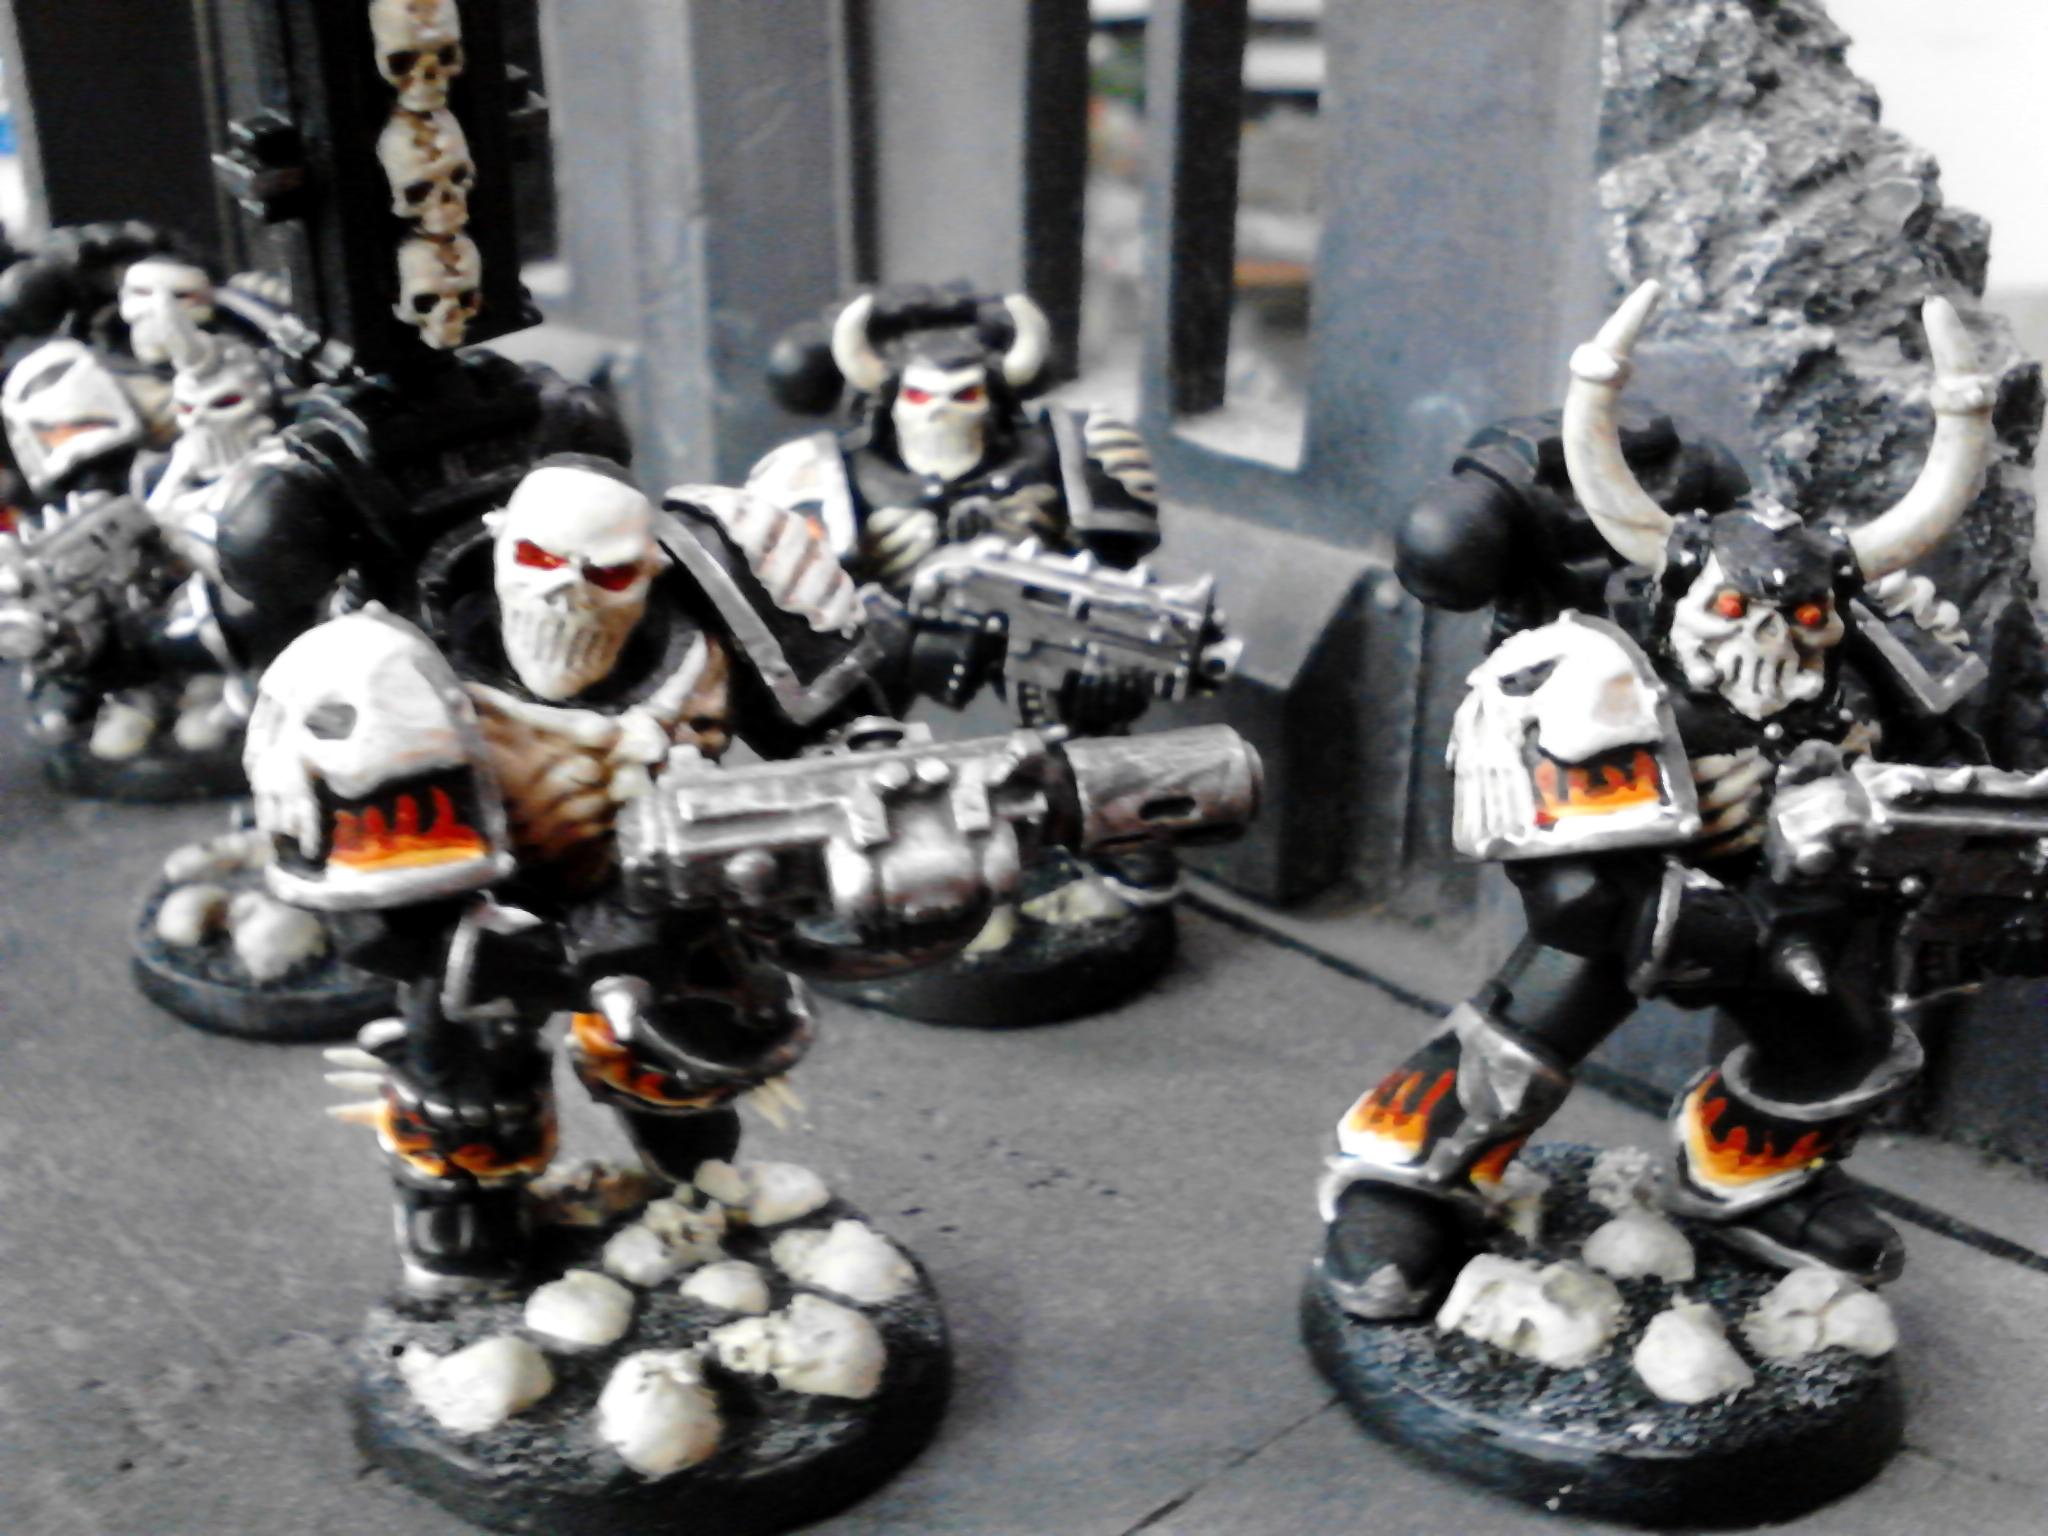 Bolter, Budget, Fire, Flames, Legion Of The Damned, Meltagun, Ribs, Skull